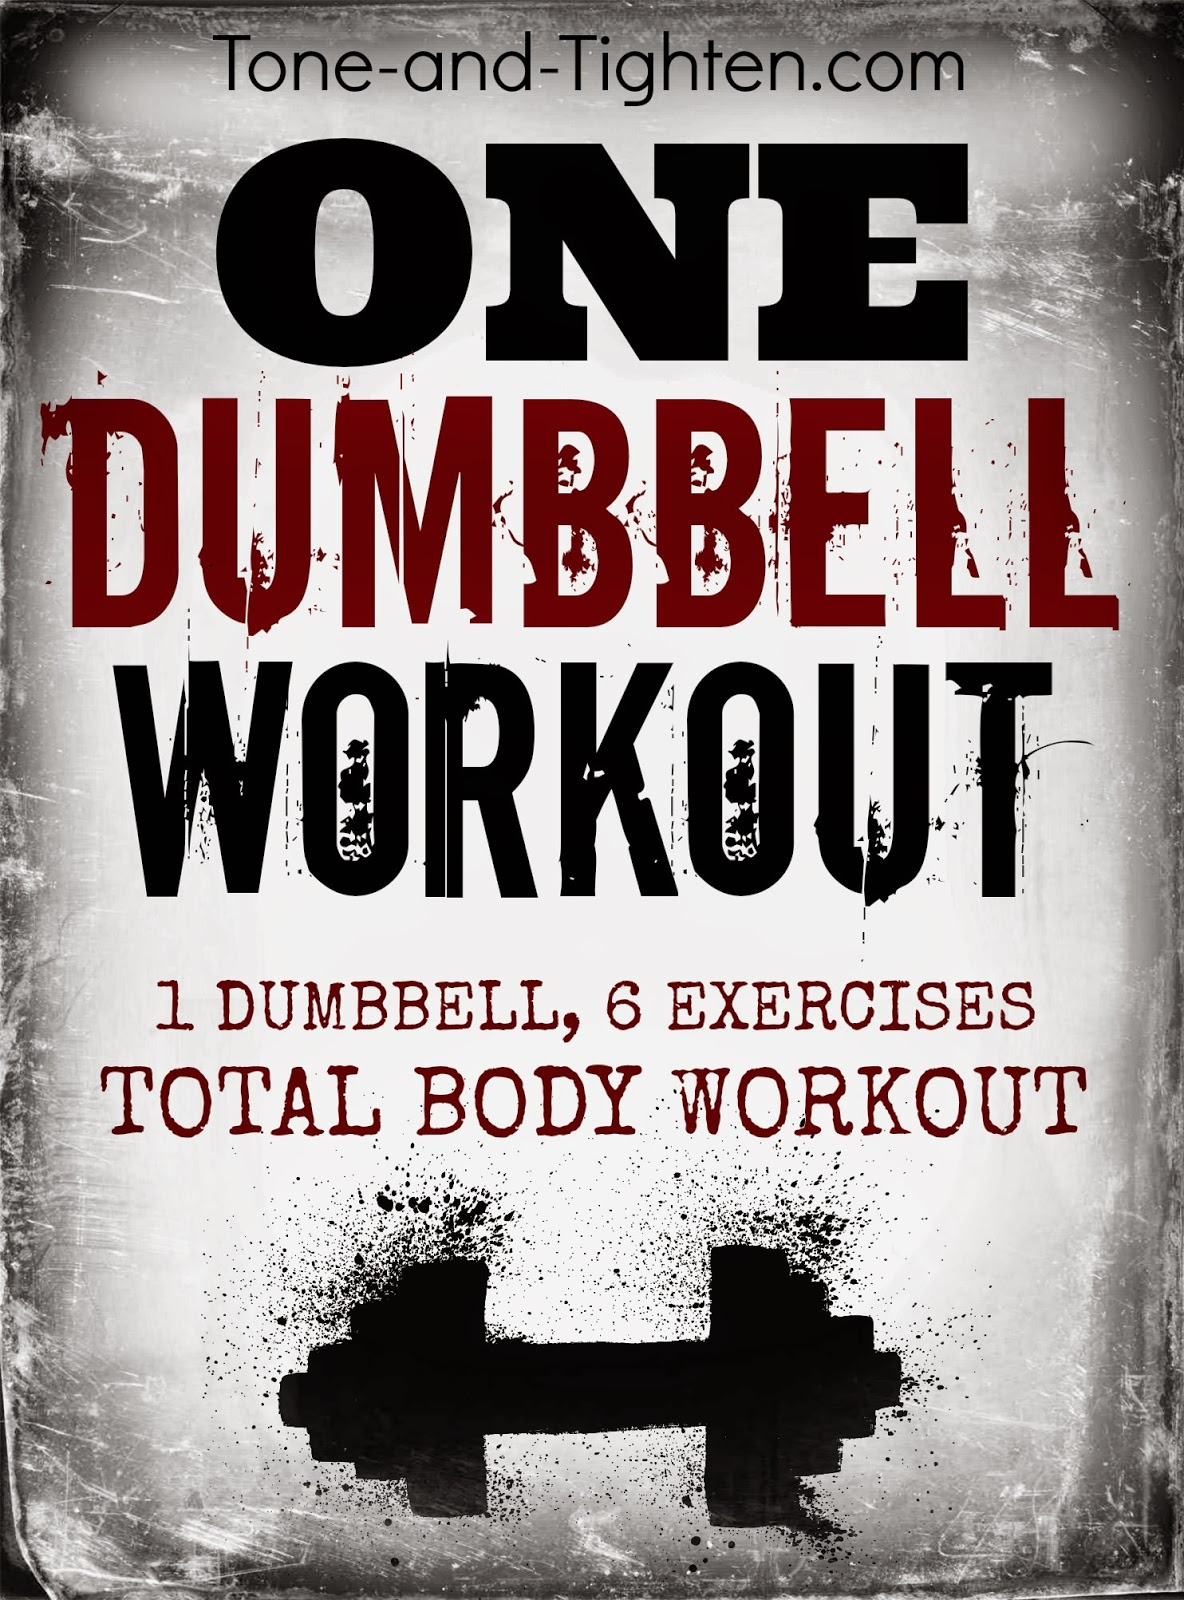 li Denon Pma 2500 Ne also The One Dumbbell Workout 6 Amazing Exercises You Can Do With Just One Dumbbell besides 69737 Hydraulic Breaker together with 465278205223710595 in addition 7400 Logic  bination Lock. on real simple circuit